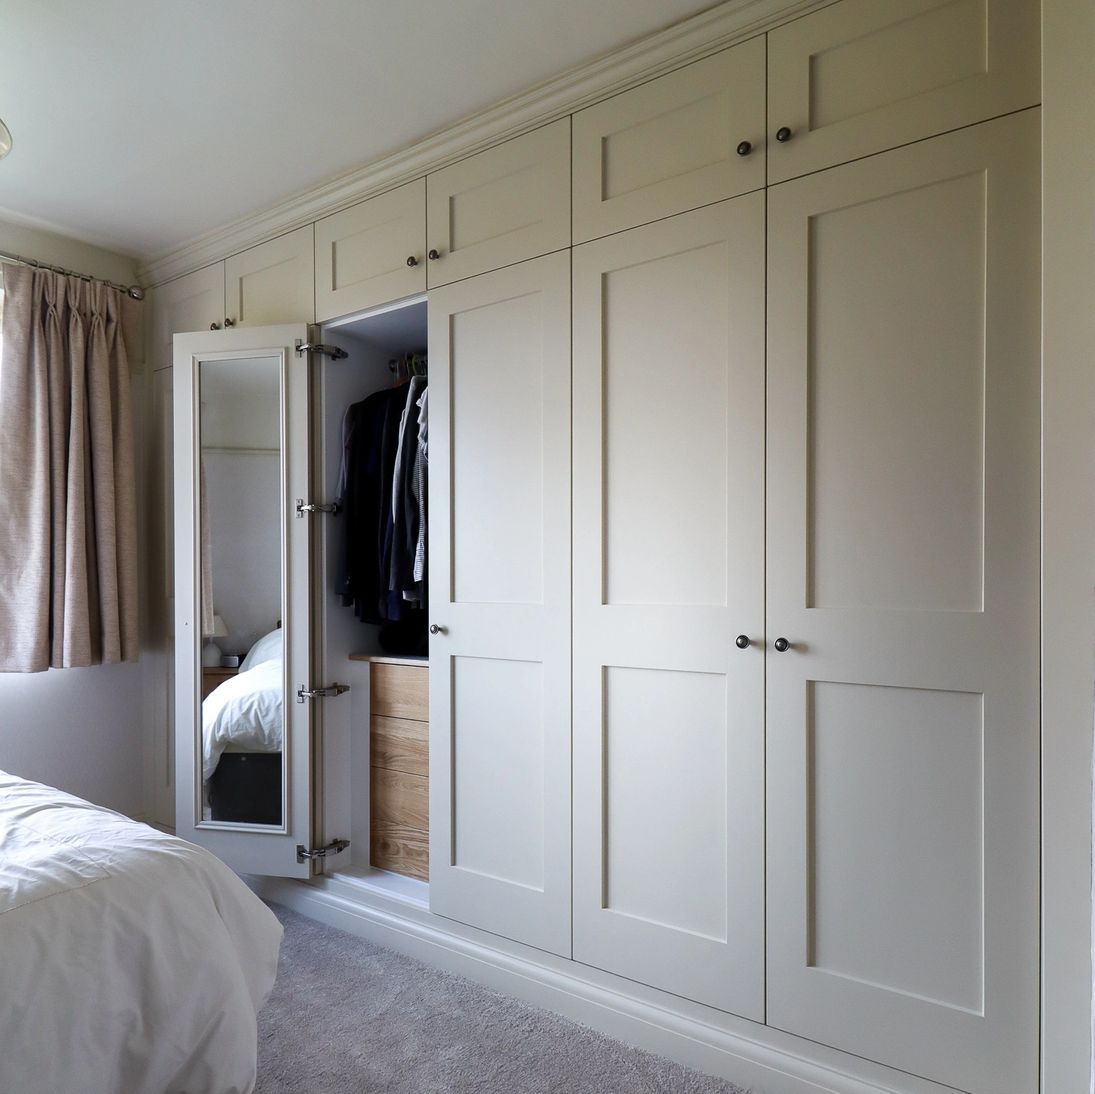 TW Bespoke - Fitted Furniture, Fitted Wardrobes, Carpentry, Joinery in Burton on Trent | TW Bespoke